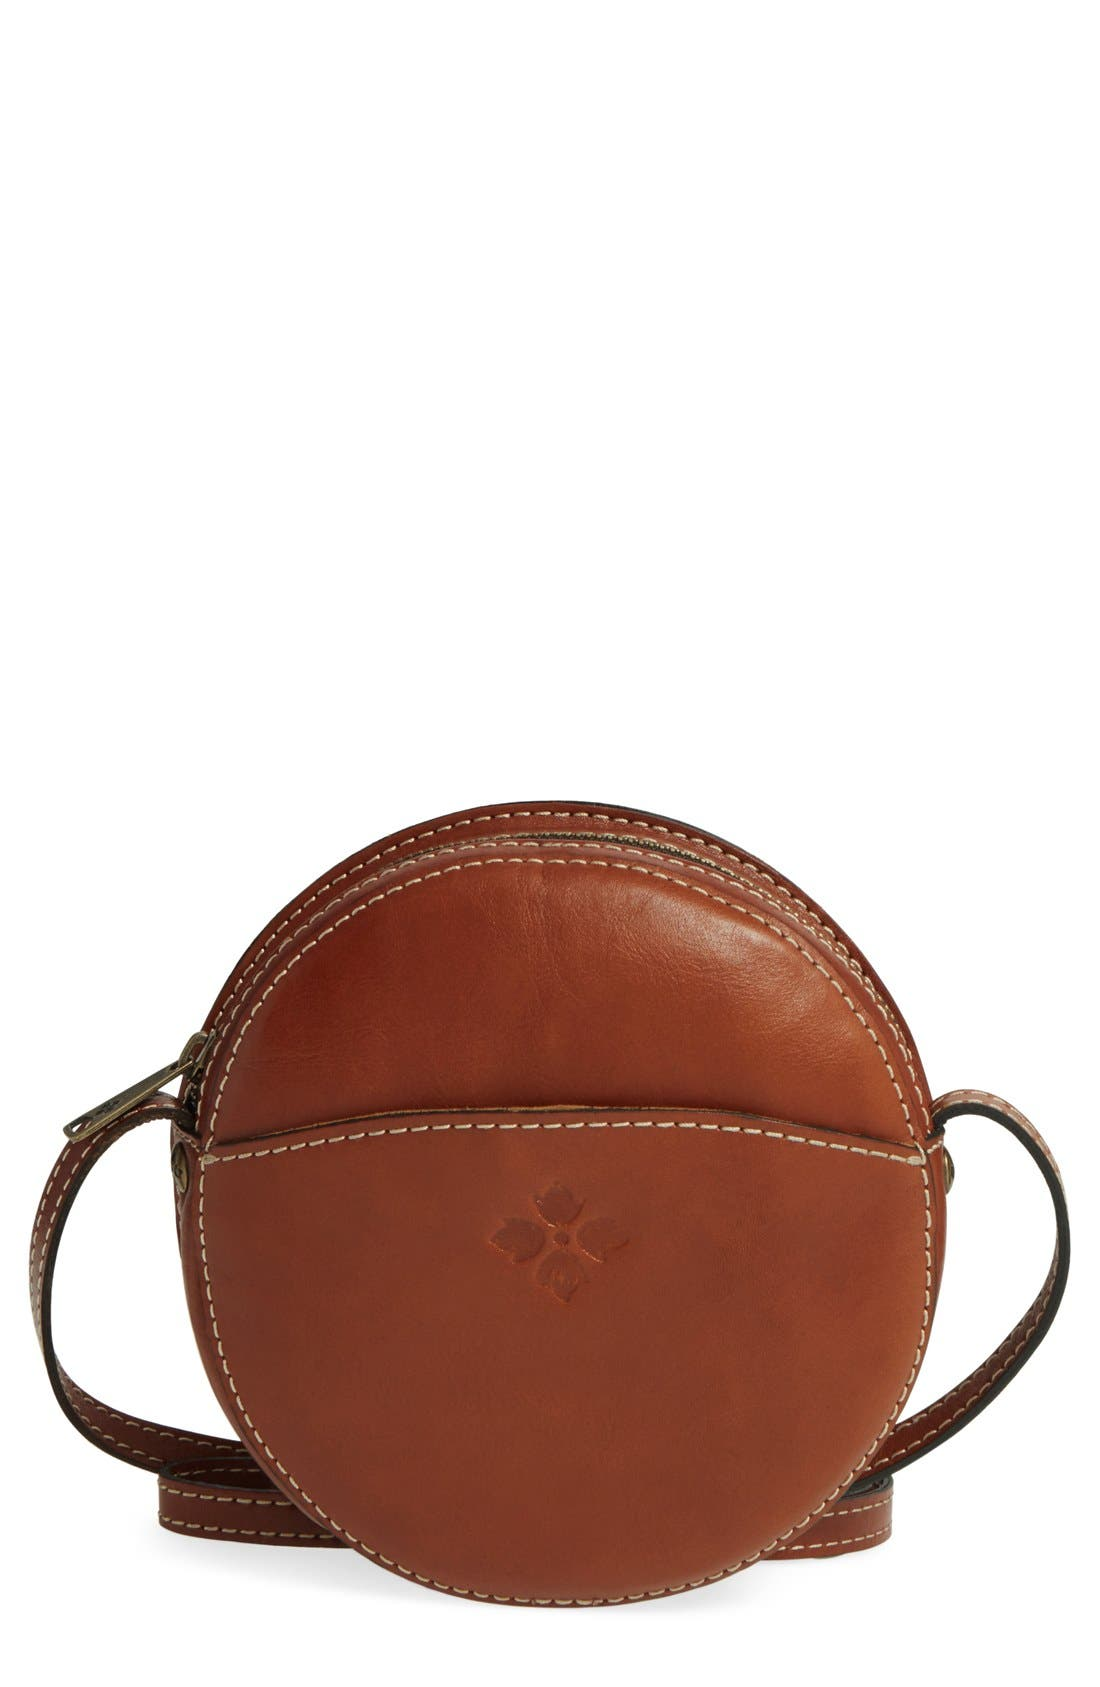 Alternate Image 1 Selected - Patricia Nash 'Small Scafati' Leather Crossbody Bag